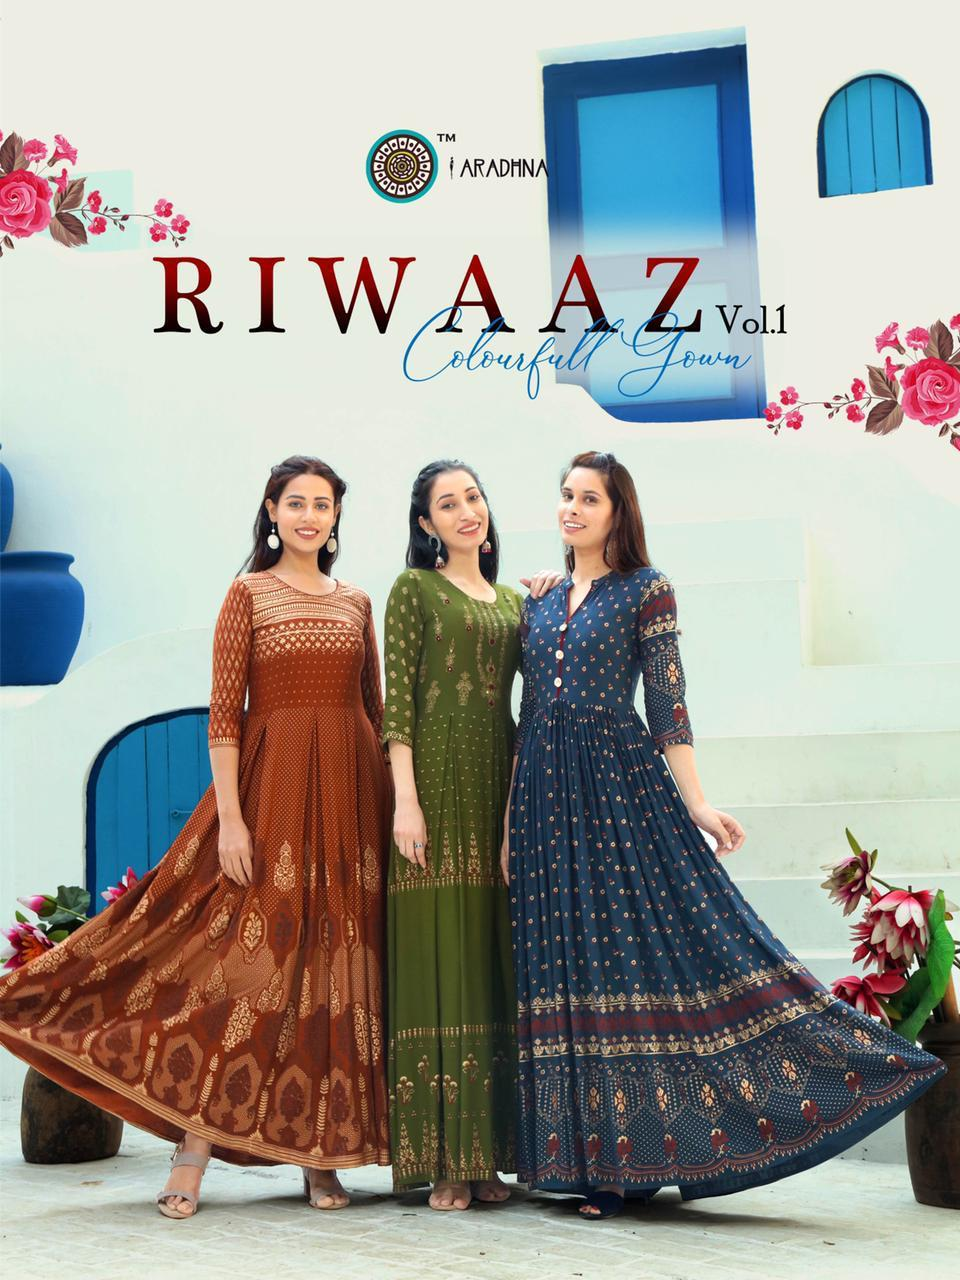 Aradhna Riwaaz Vol 1 Kurti Wholesale Catalog 11 Pcs 1 - Aradhna Riwaaz Vol 1 Kurti Wholesale Catalog 11 Pcs